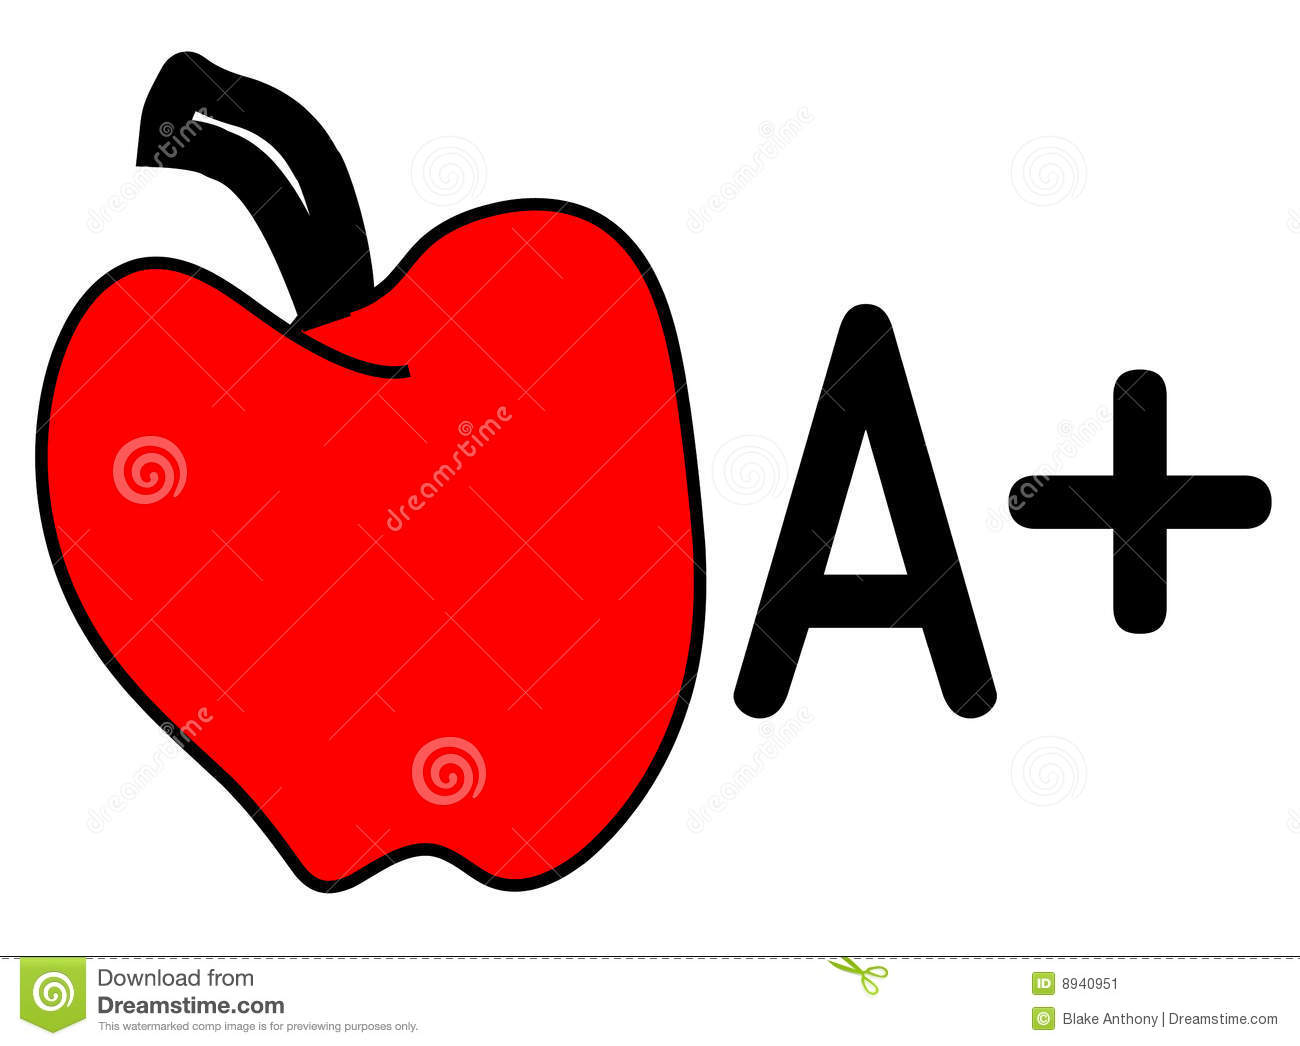 Vector illustration of an apple and A+.